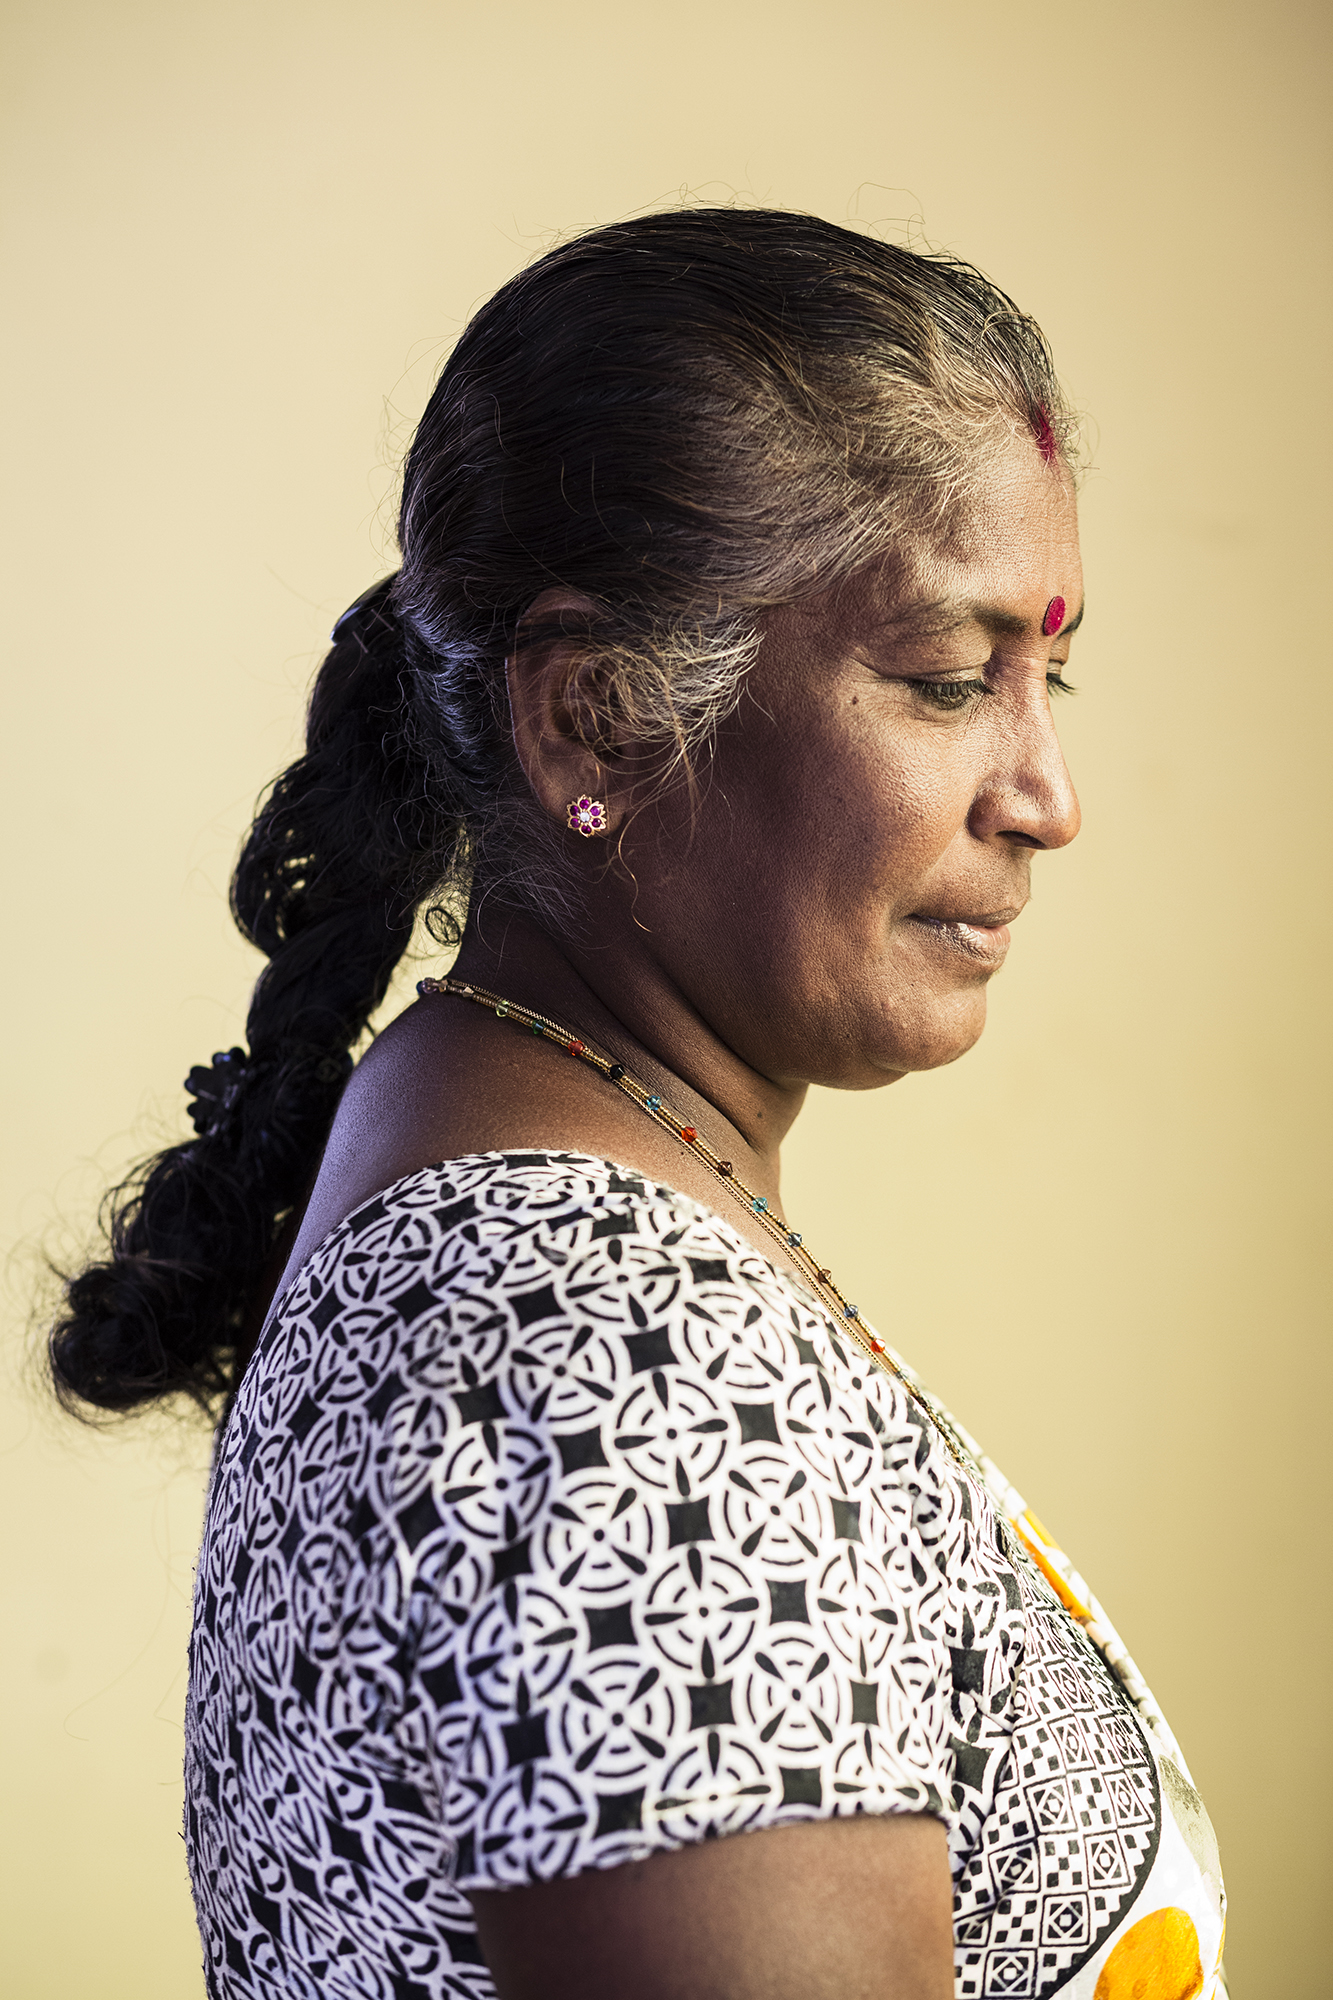 Anton, 55. Upon her 19 year old son being ordered to attend a hearing for suspicion of his involvement in LTTE, Anton accompanied him. It was the last time she saw her son. He is currently in Colombo prison.